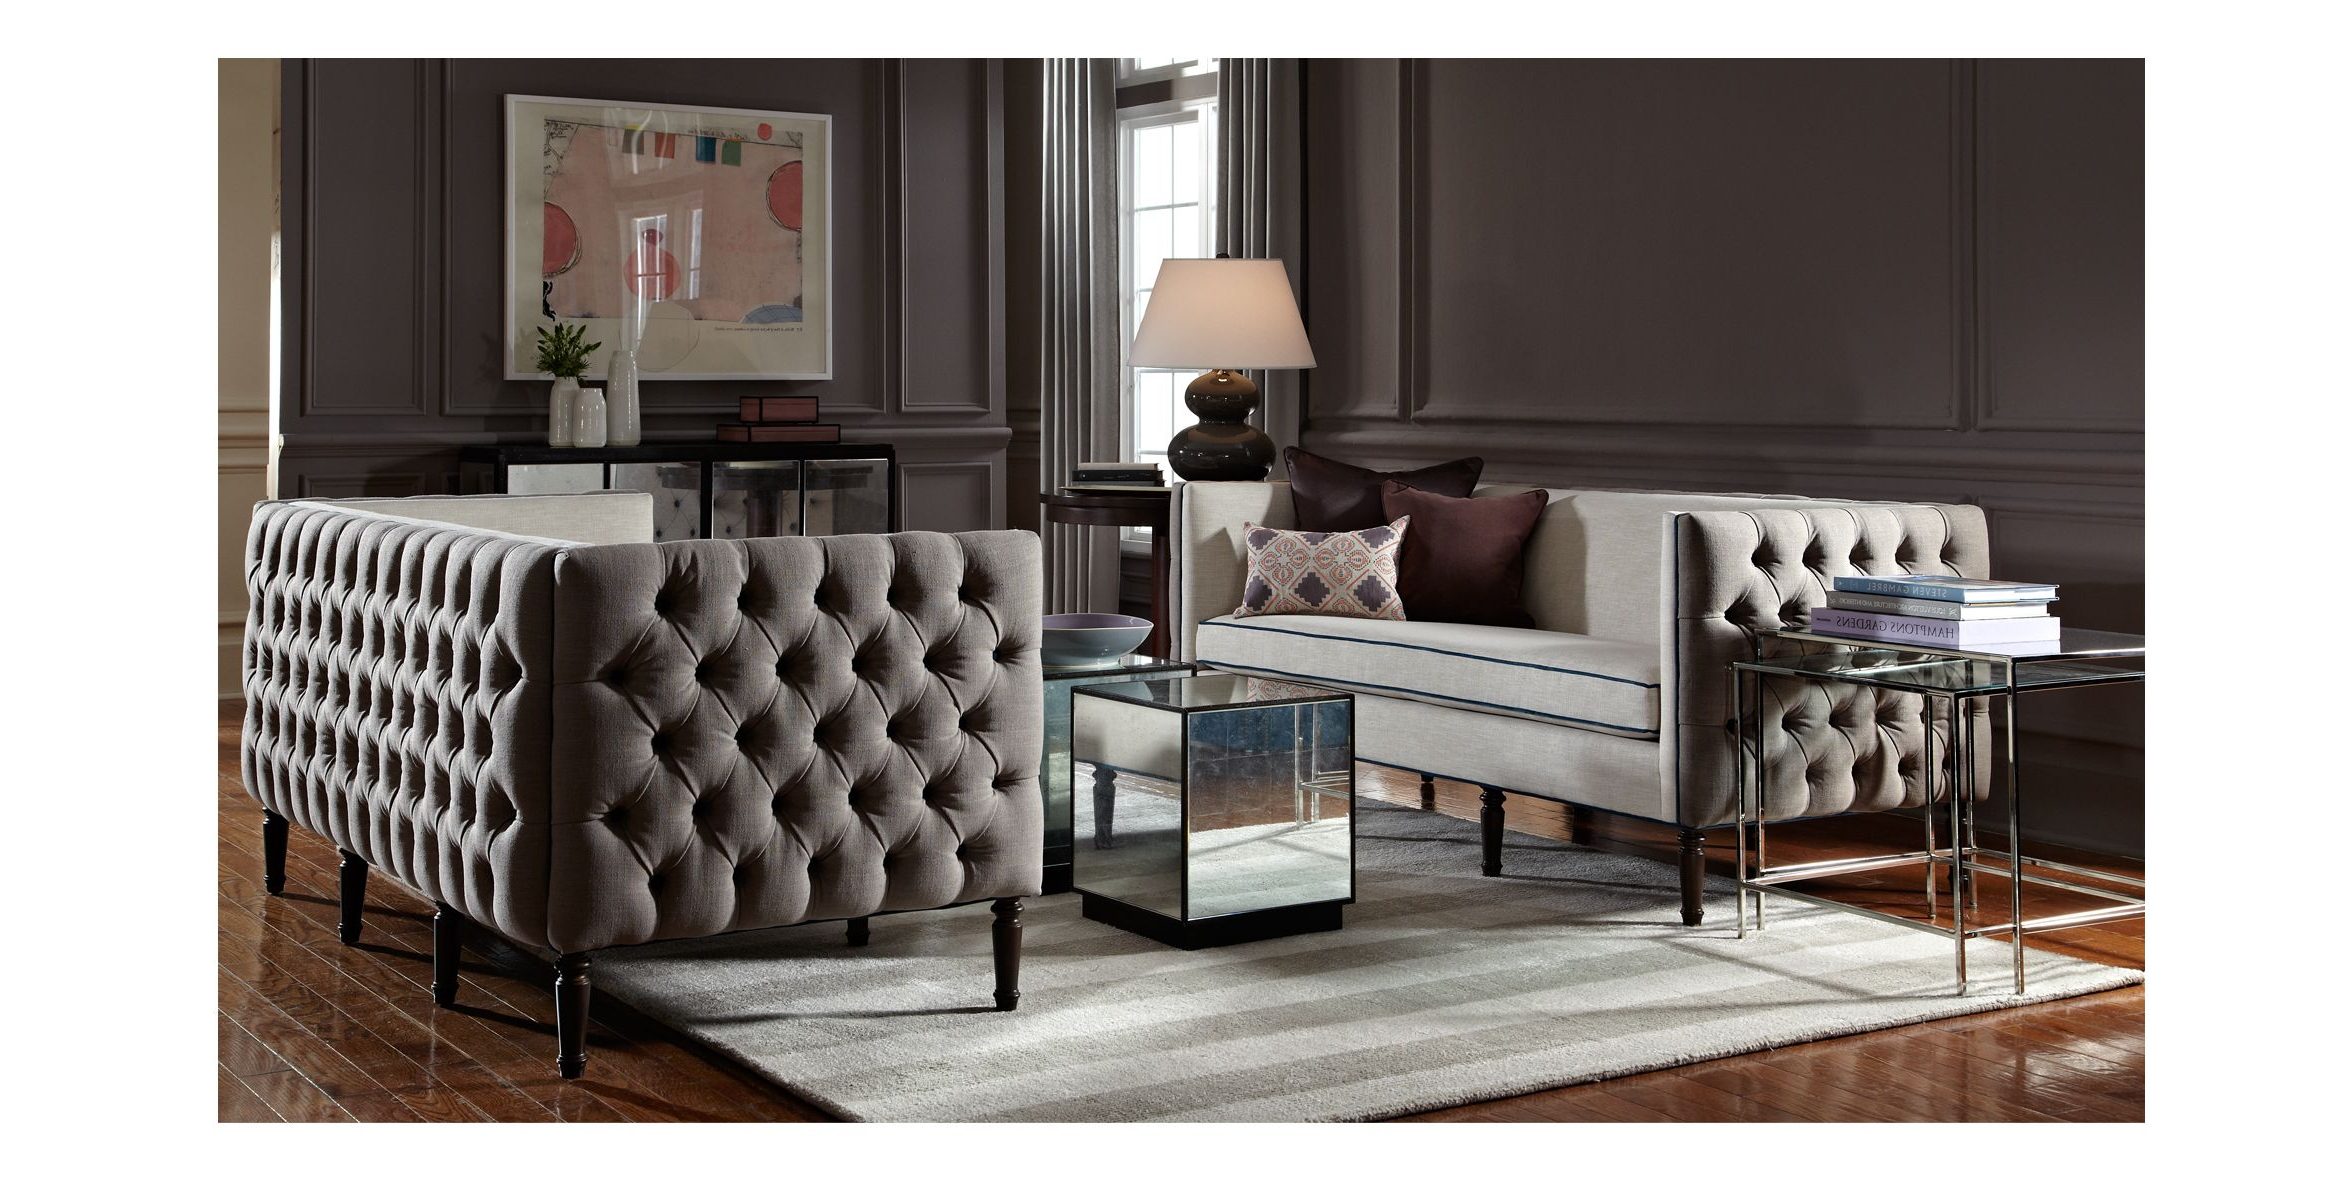 Modern Tufted Sofa – Google Search | Turn Of The Century Moderne In Parsons Travertine Top & Dark Steel Base 48x16 Console Tables (View 13 of 20)